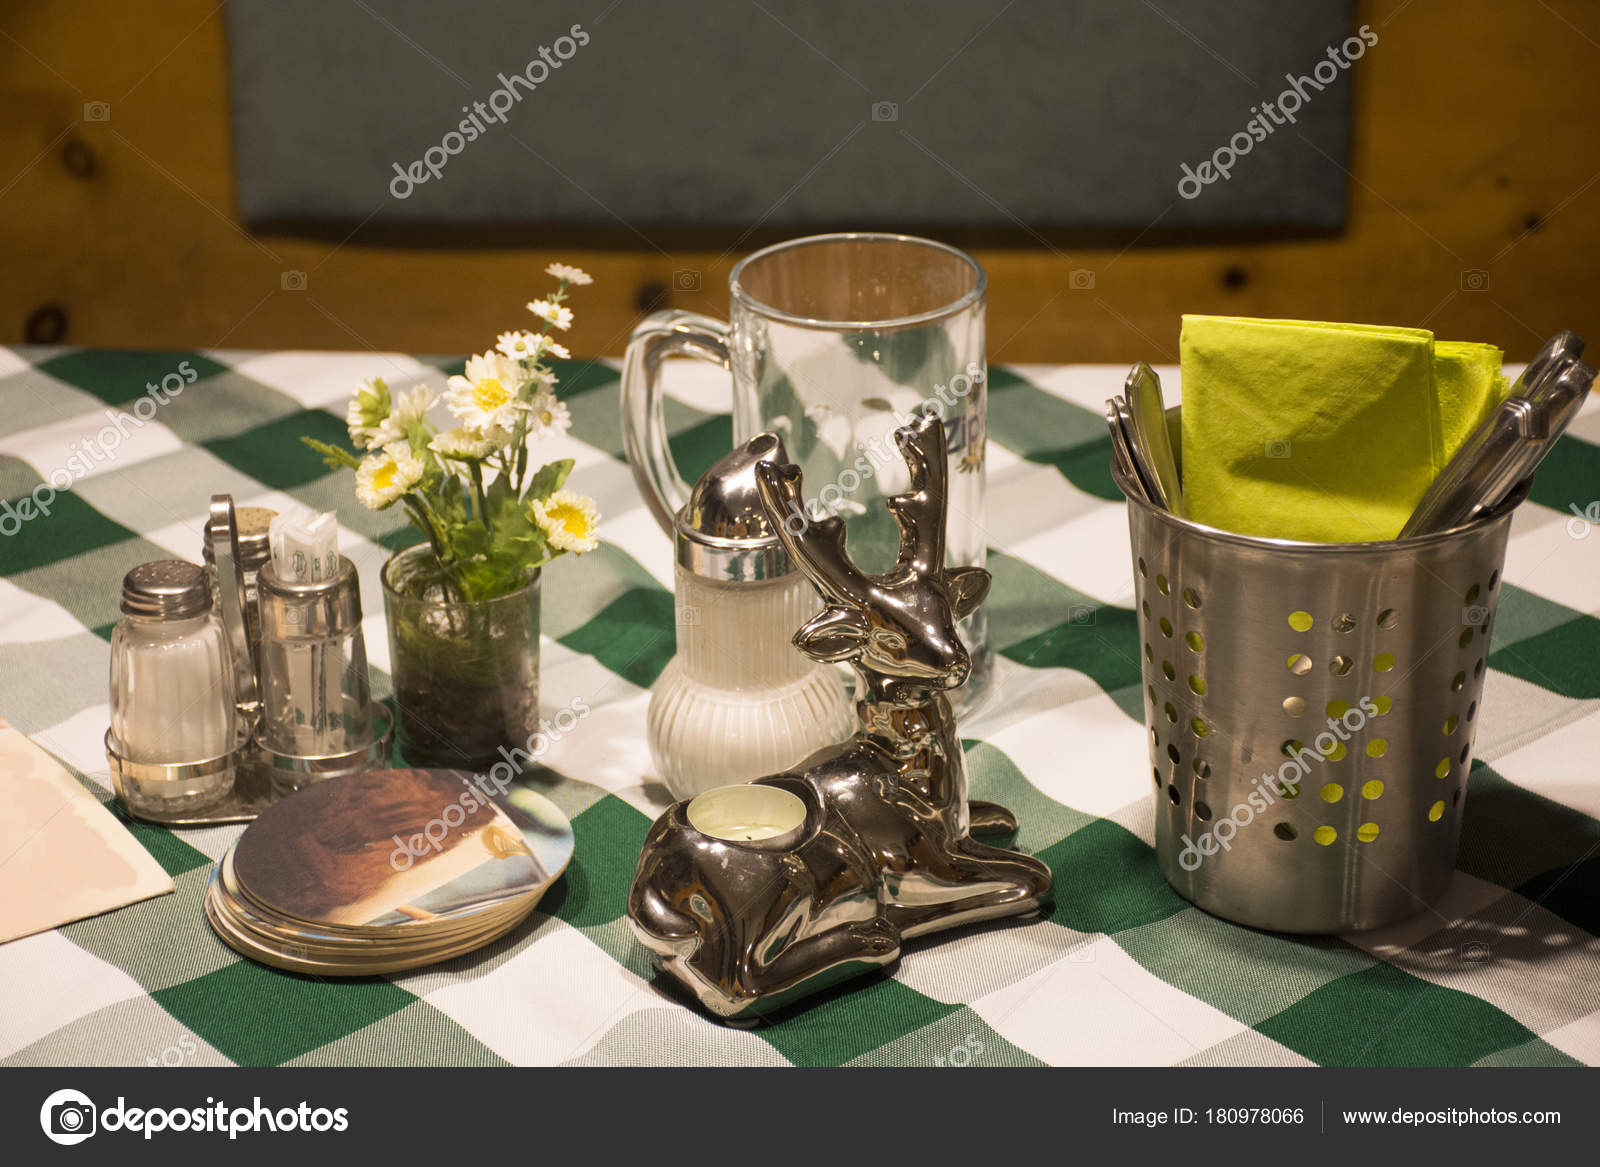 Dining Accessories For Eat On Table In Dining Room At Restaurant - Restaurant table accessories